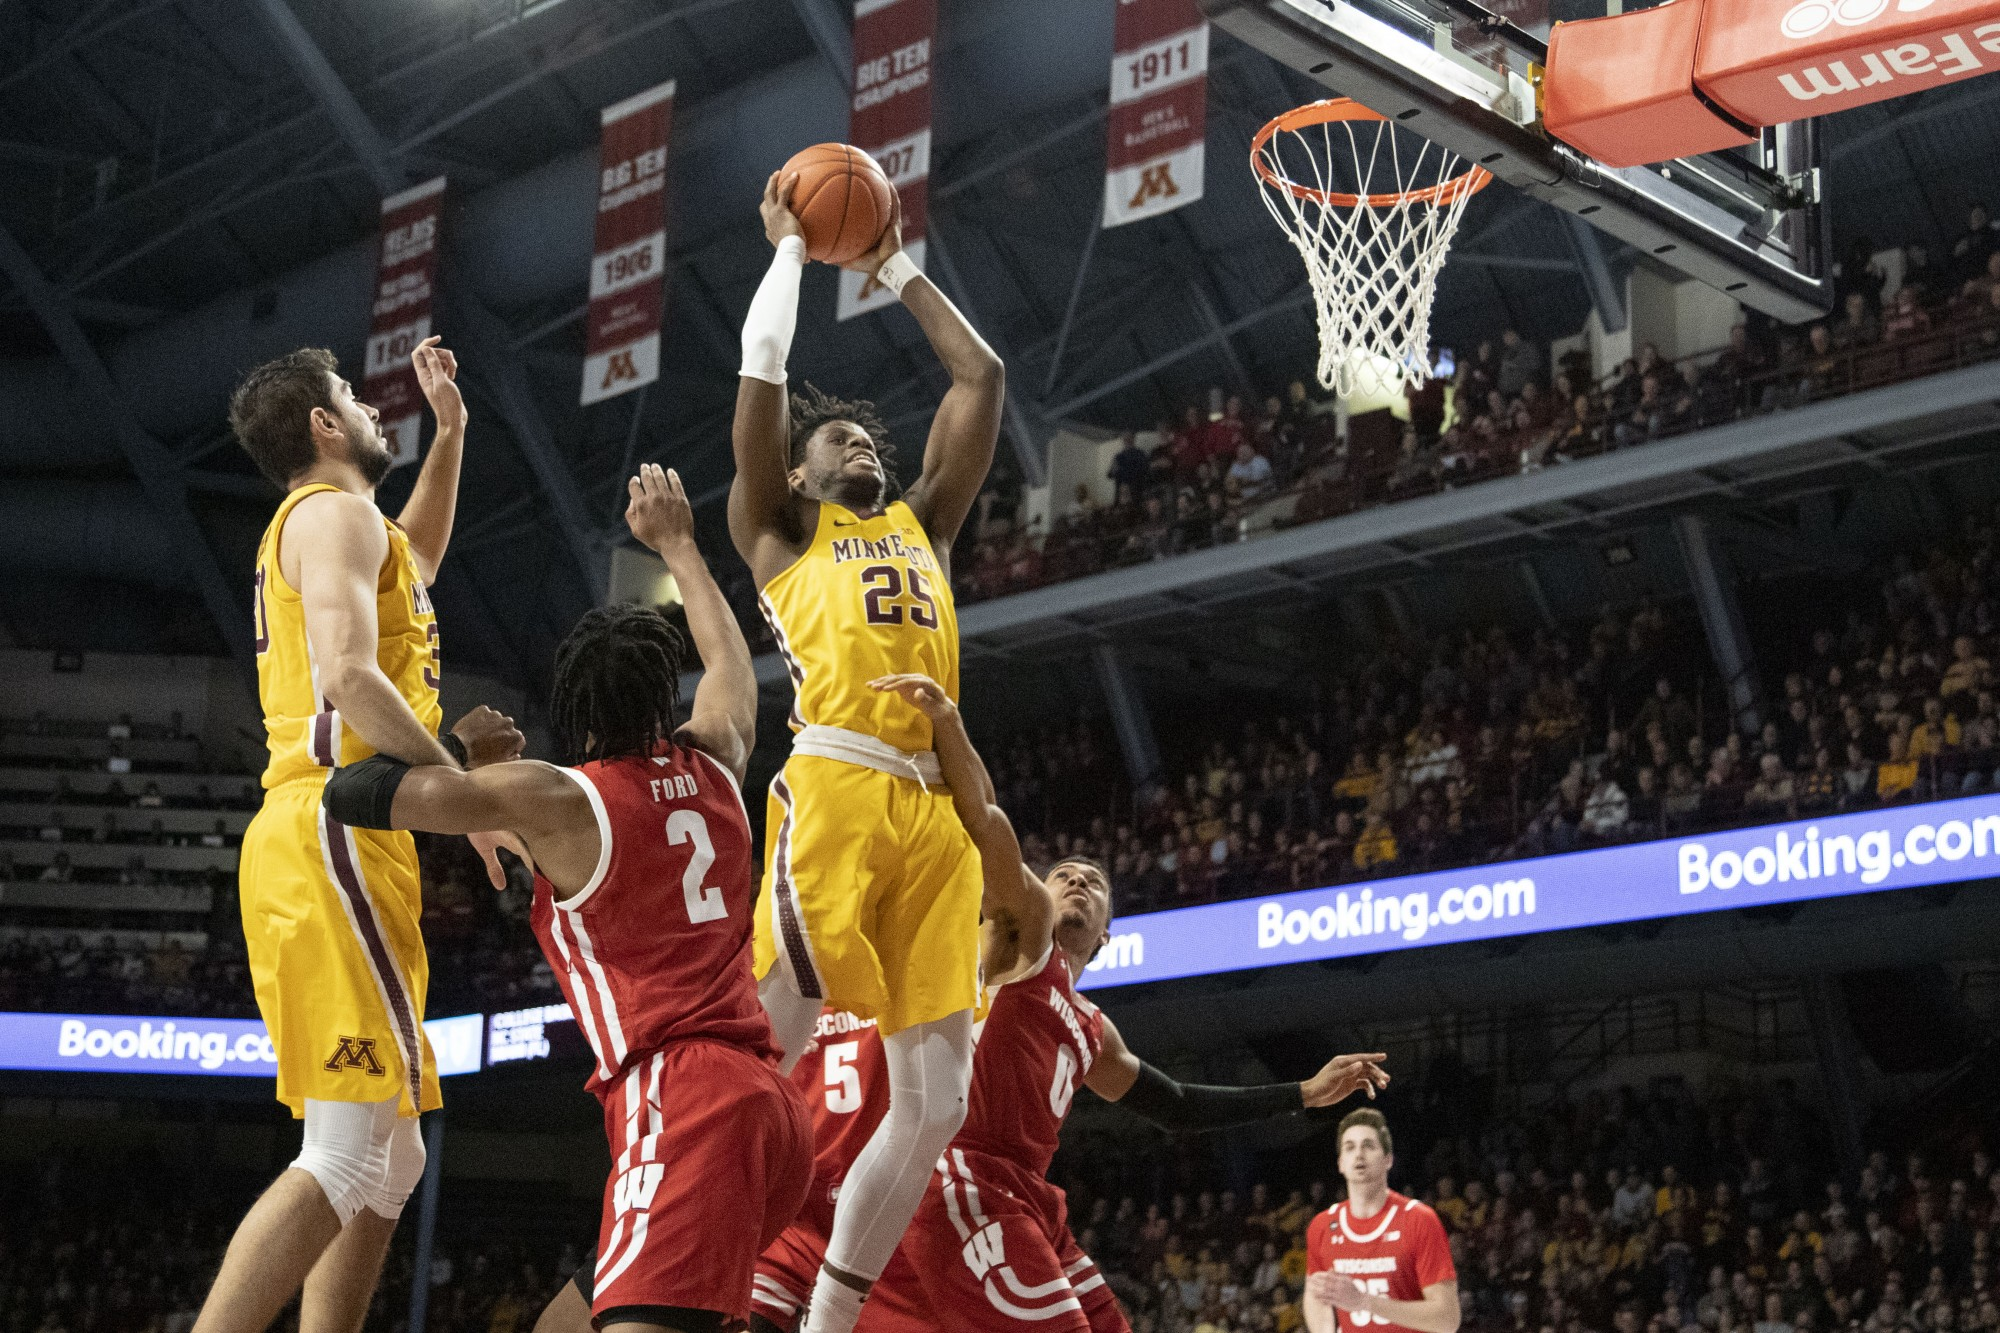 Center Daniel Oturu looks to dunk at Williams Arena on Wednesday, Feb. 5. The Gophers beat the Badgers 70-52.